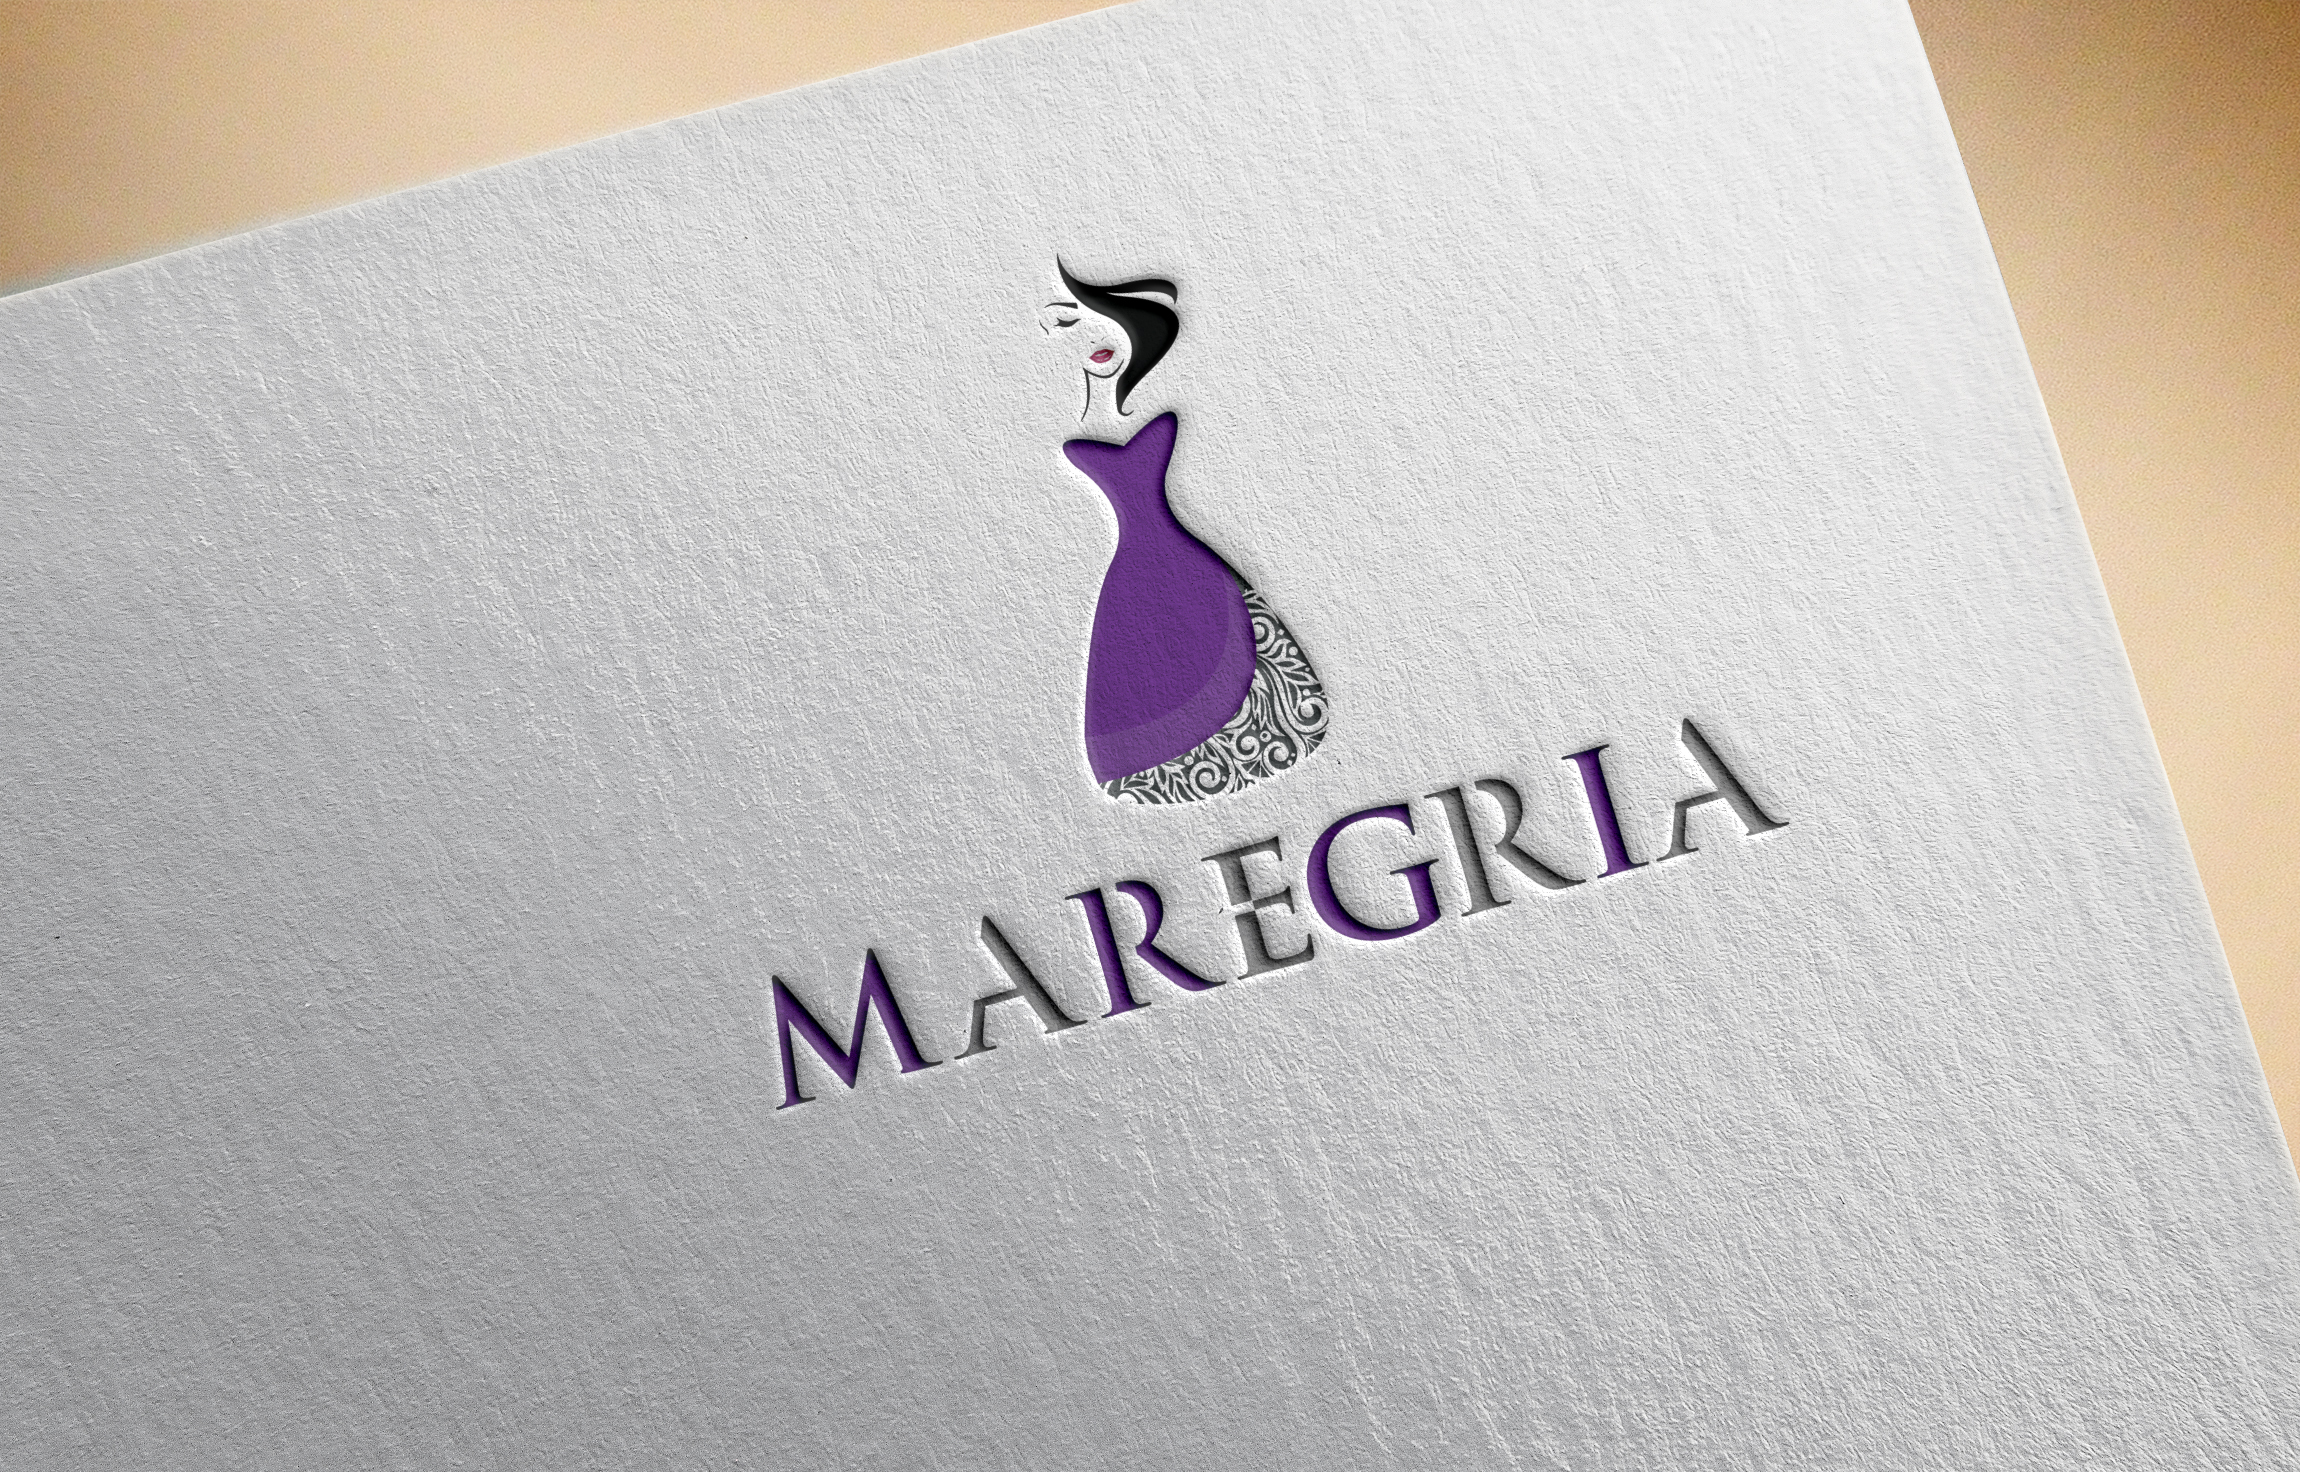 Make a professional and modern logo